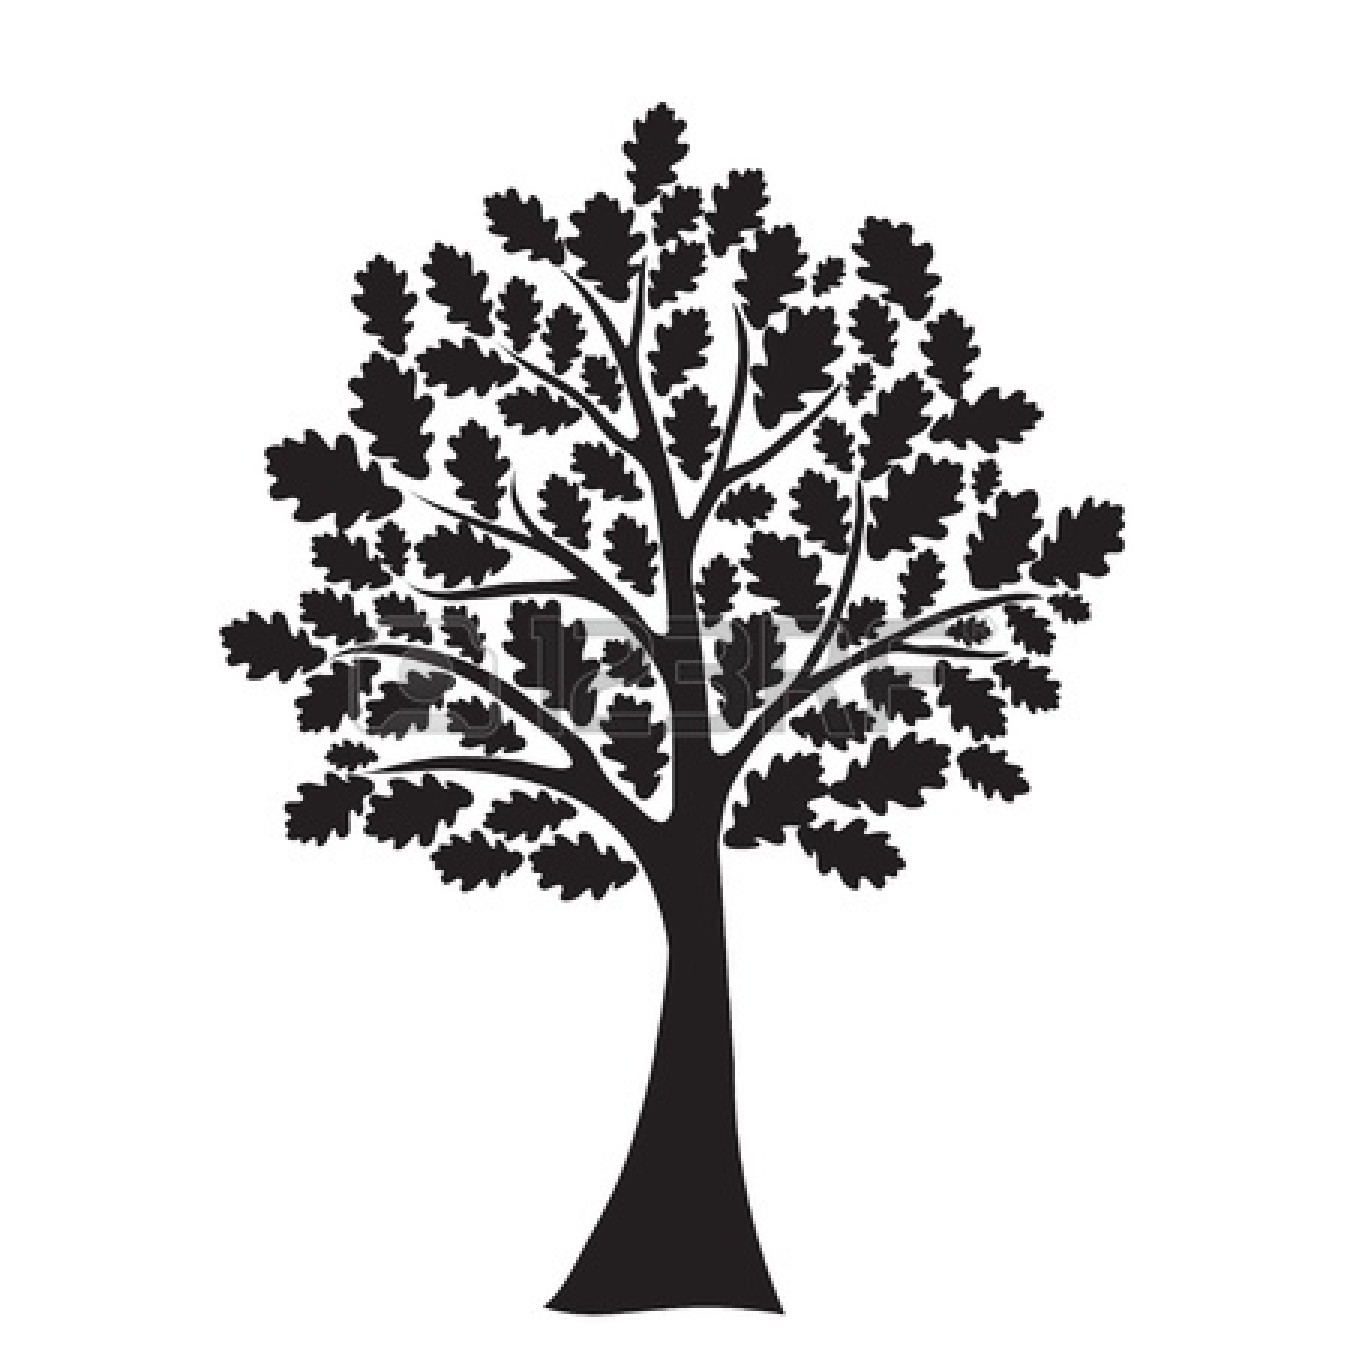 Tree with 8 hearts on it black and white clipart svg library Tree with 8 hearts on it black and white clipart - ClipartFest svg library